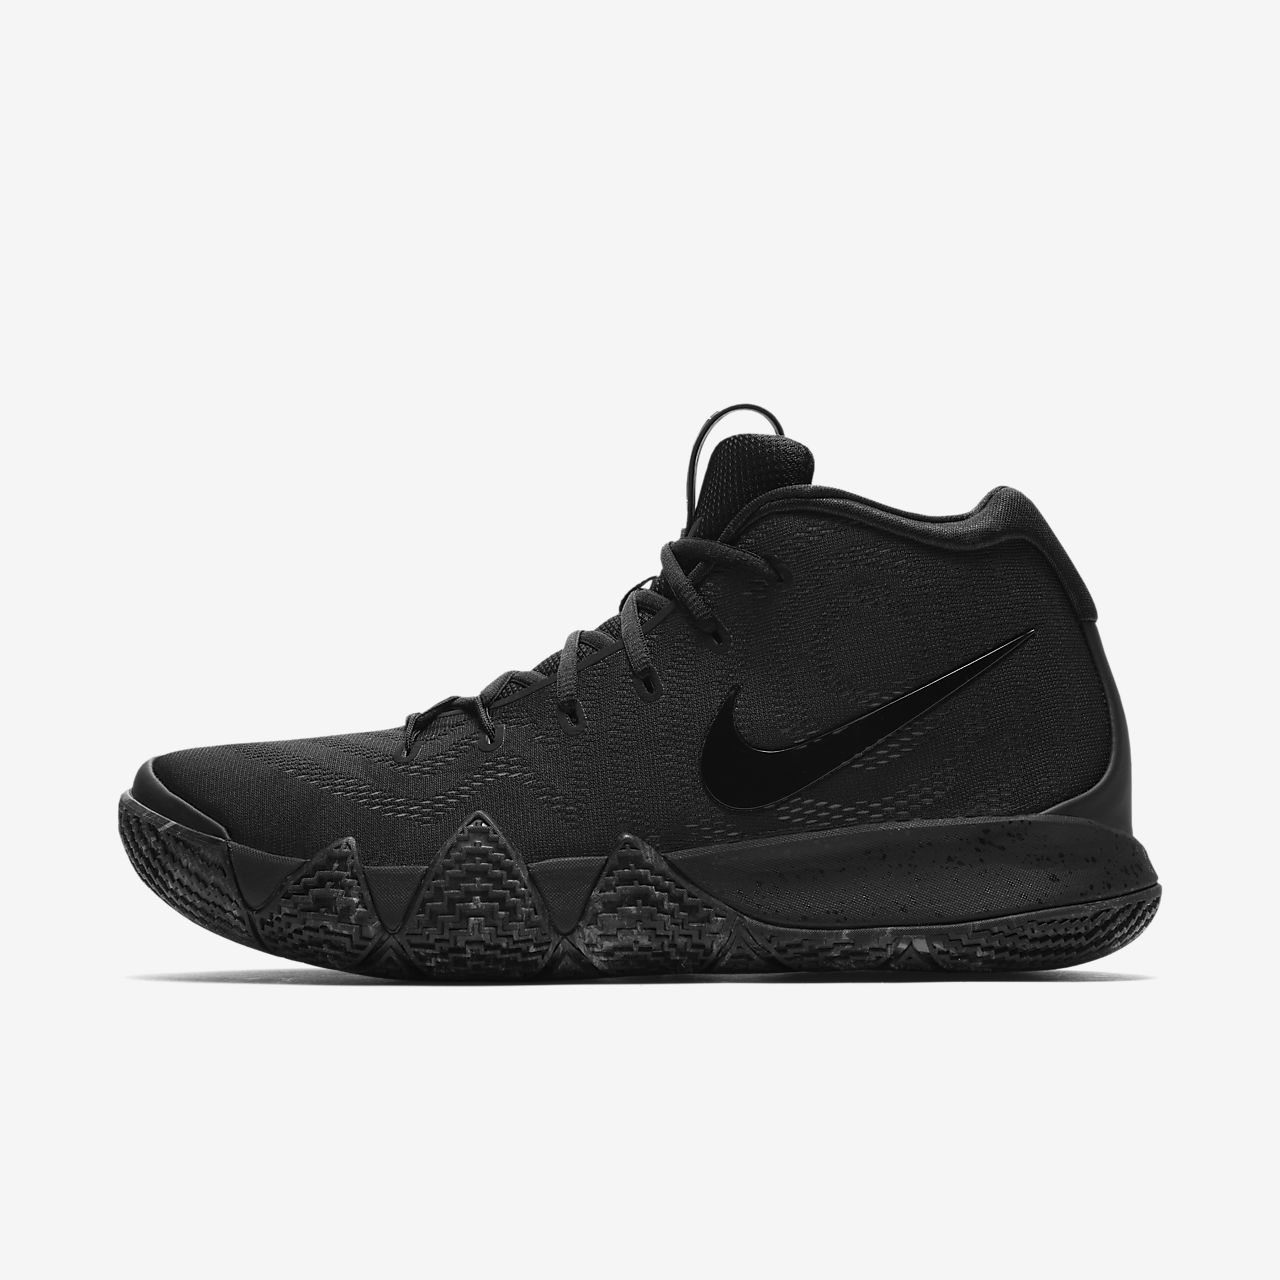 watch 7f5fd 1cfab Kyrie 4 Basketball Shoe. Nike.com CA